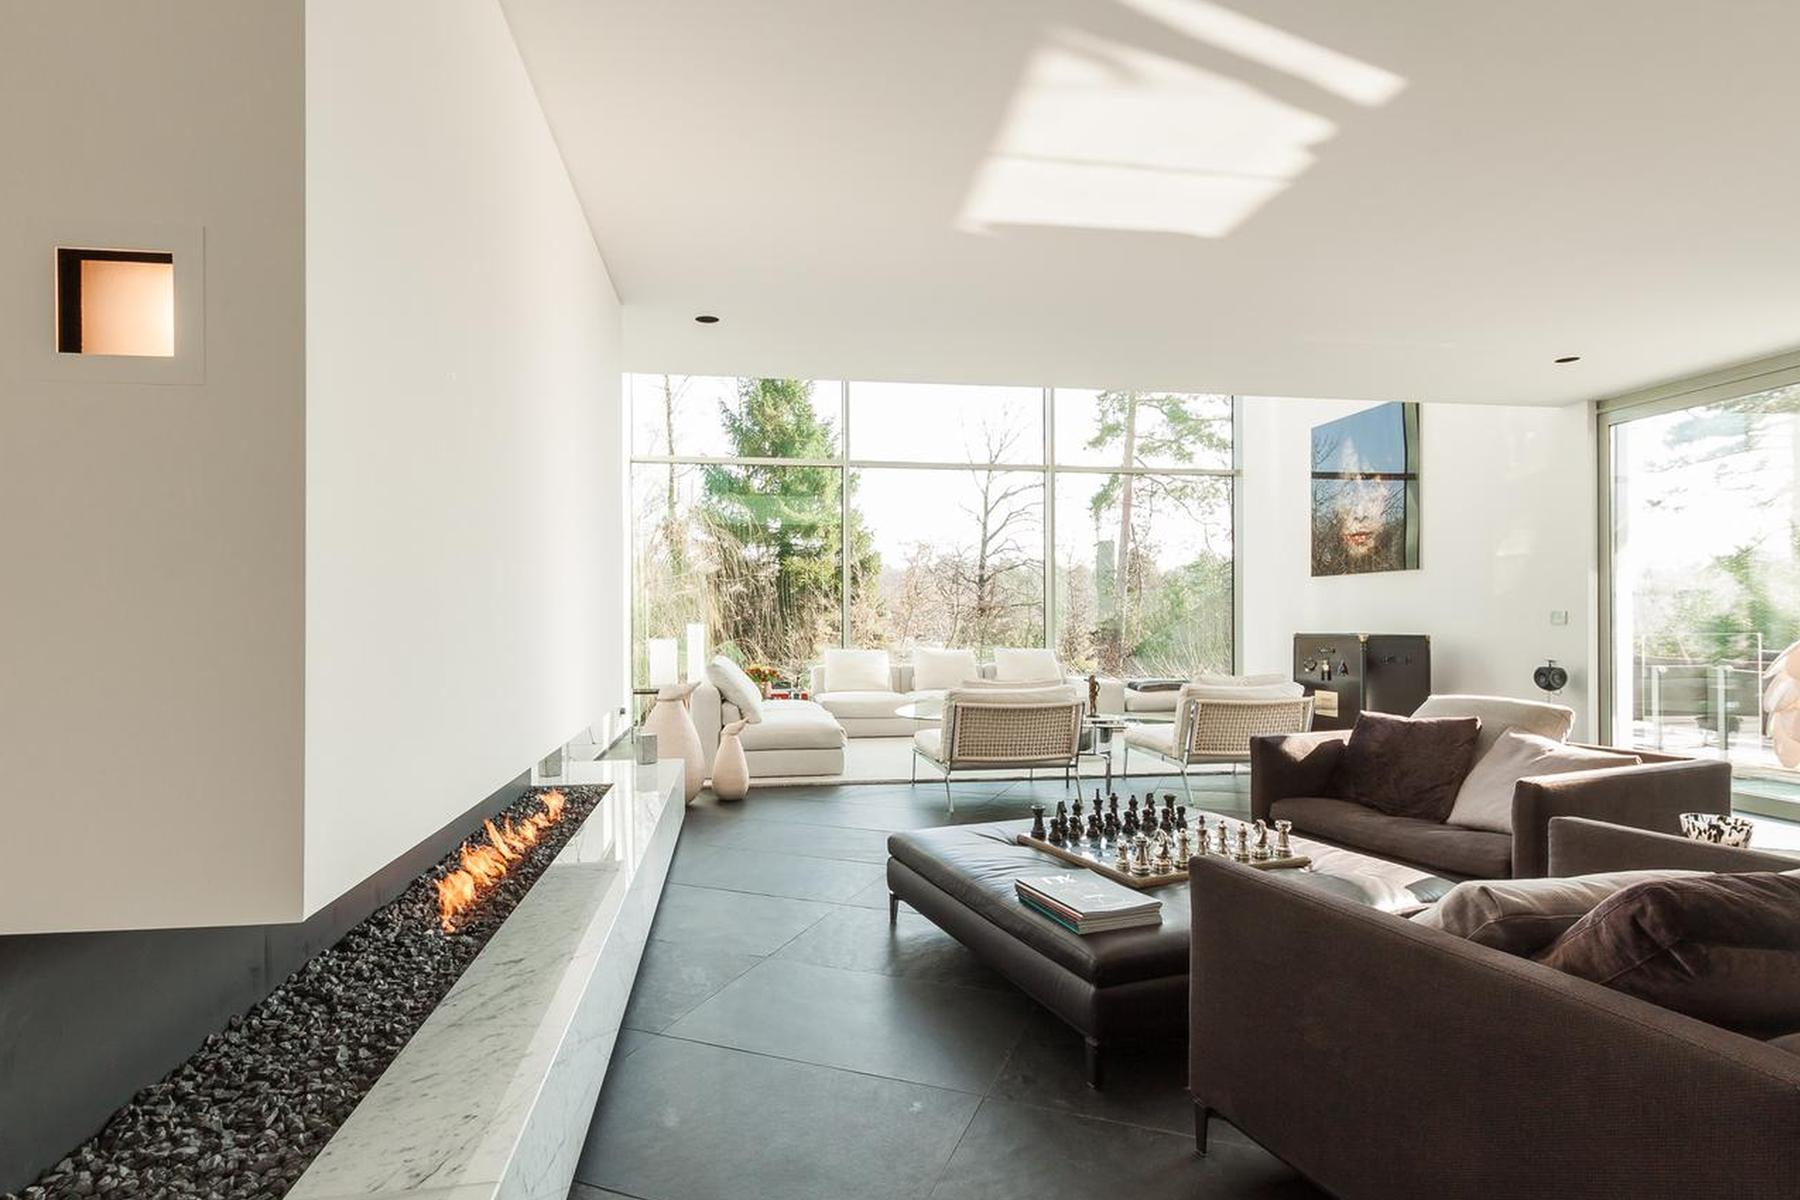 Other Residential for Sale at Uccle I Prince d'Orange Uccle, Brussels, 1180 Belgium